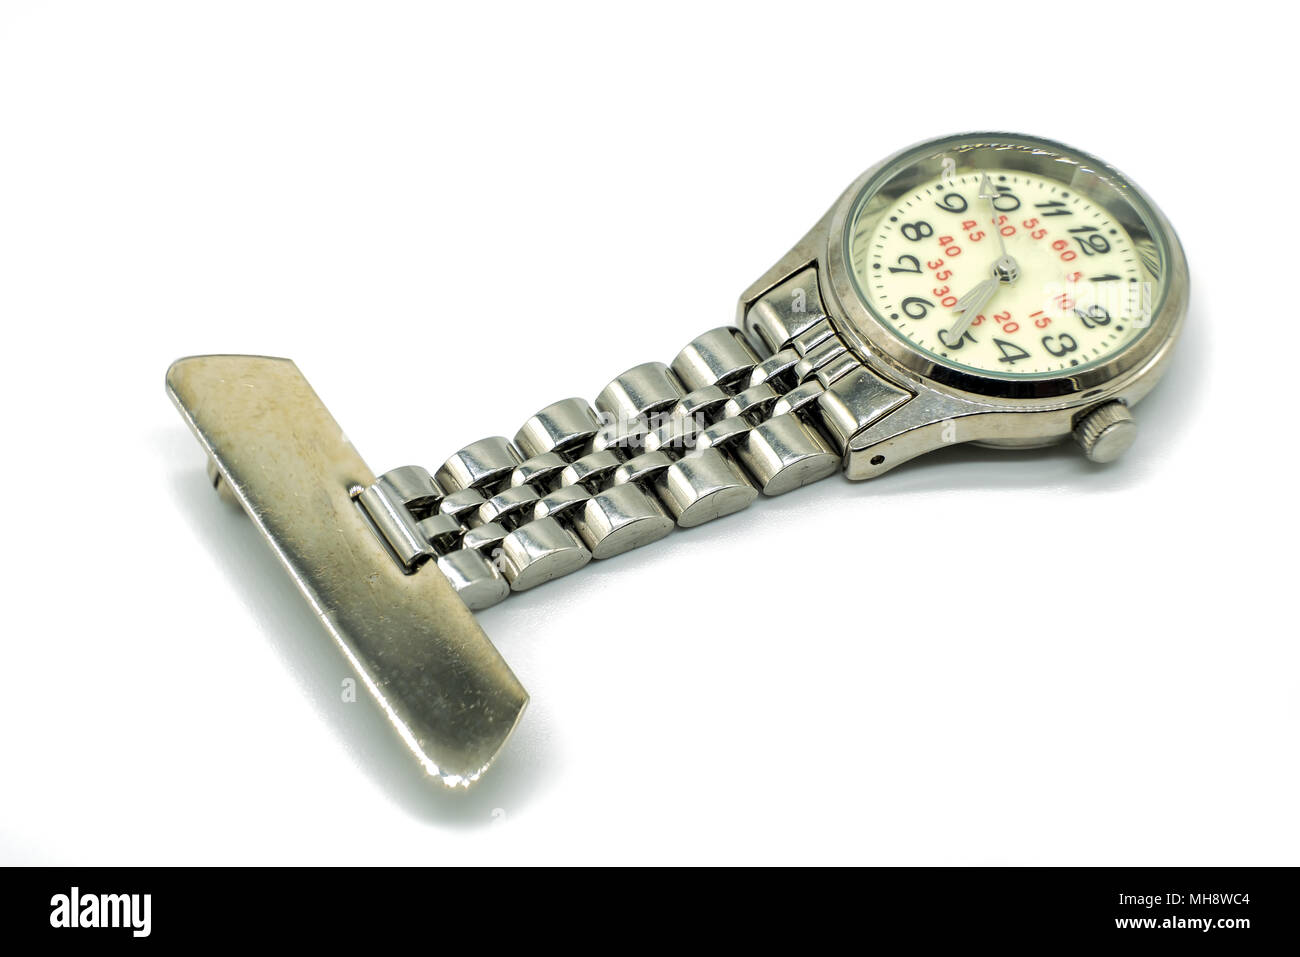 An old nurses silver clasp watch isolated on white background. The face of the watch is blurred due to age and usage. - Stock Image